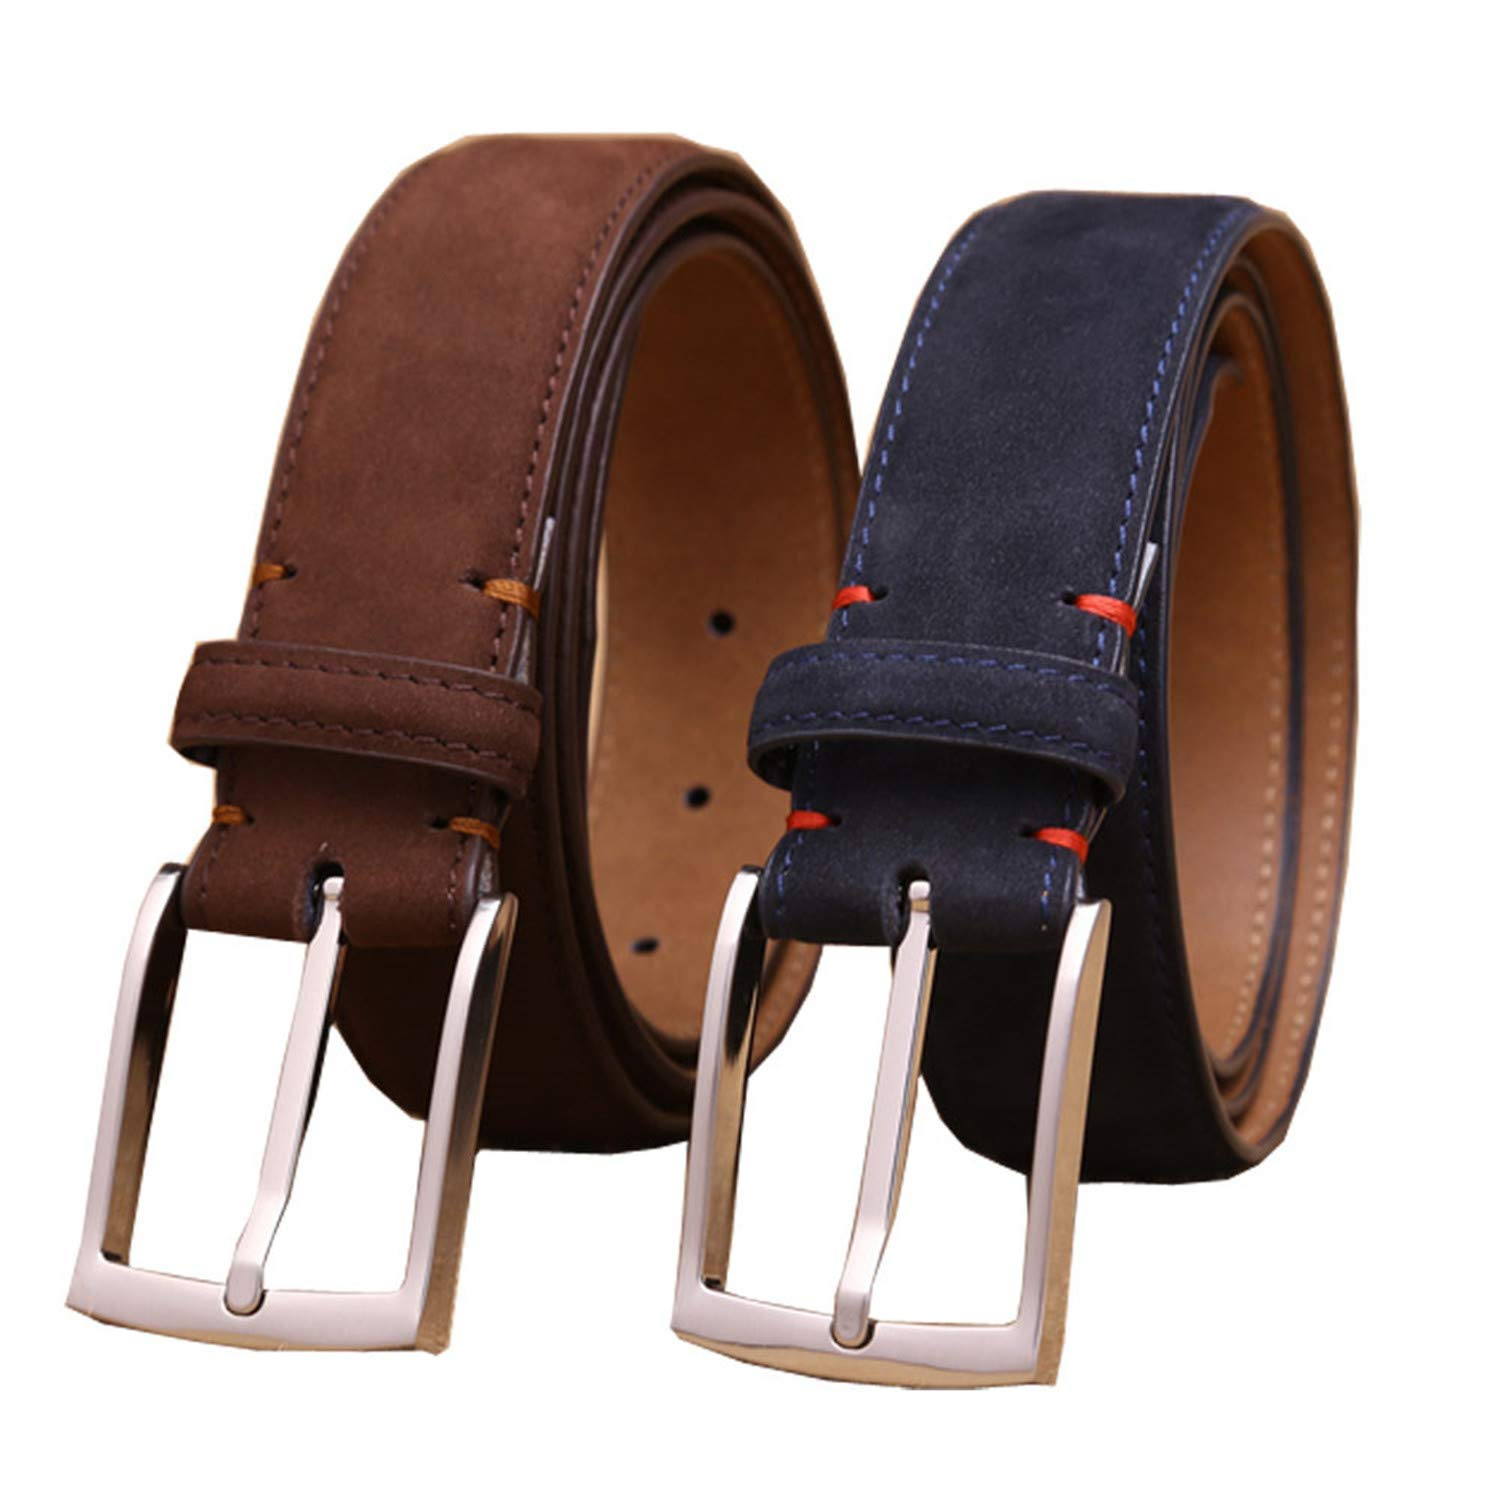 luxury mens first layer cowhide nubuck leather belt for dress//business